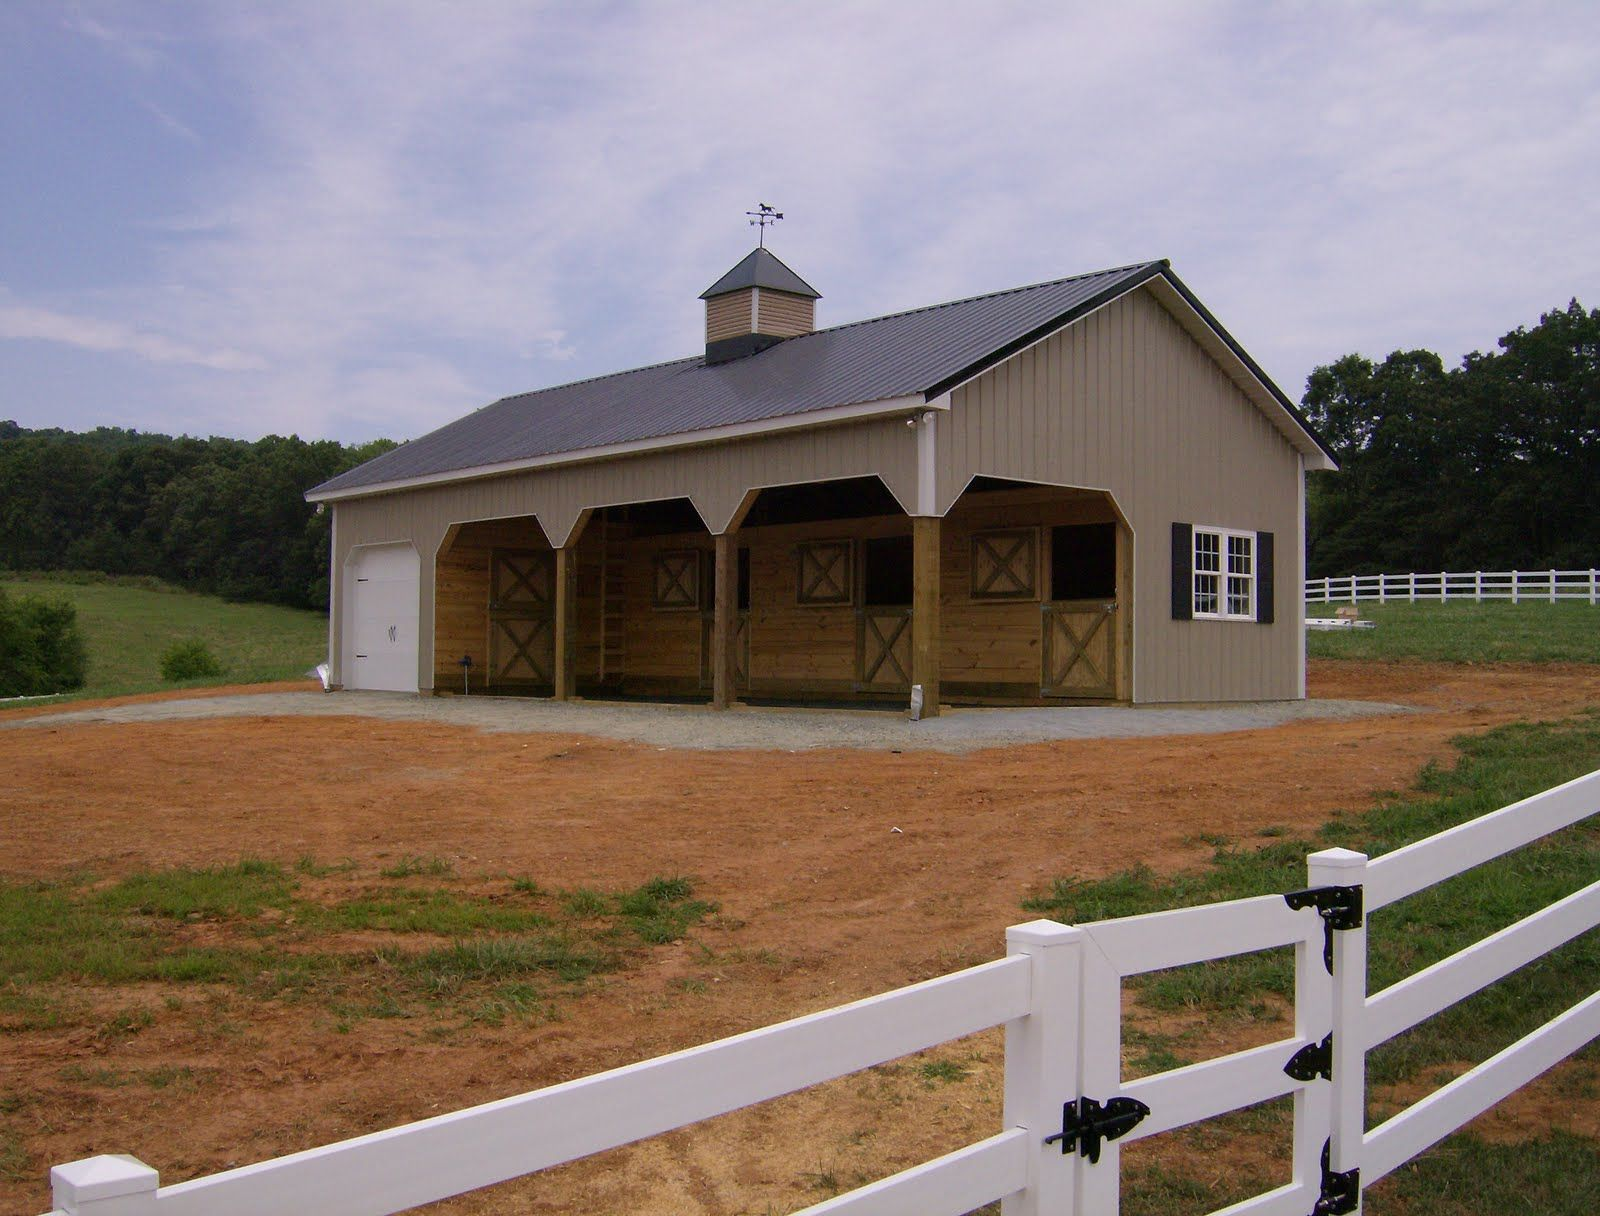 jpg corebuildingsolutions horse amish buildings garage barns img